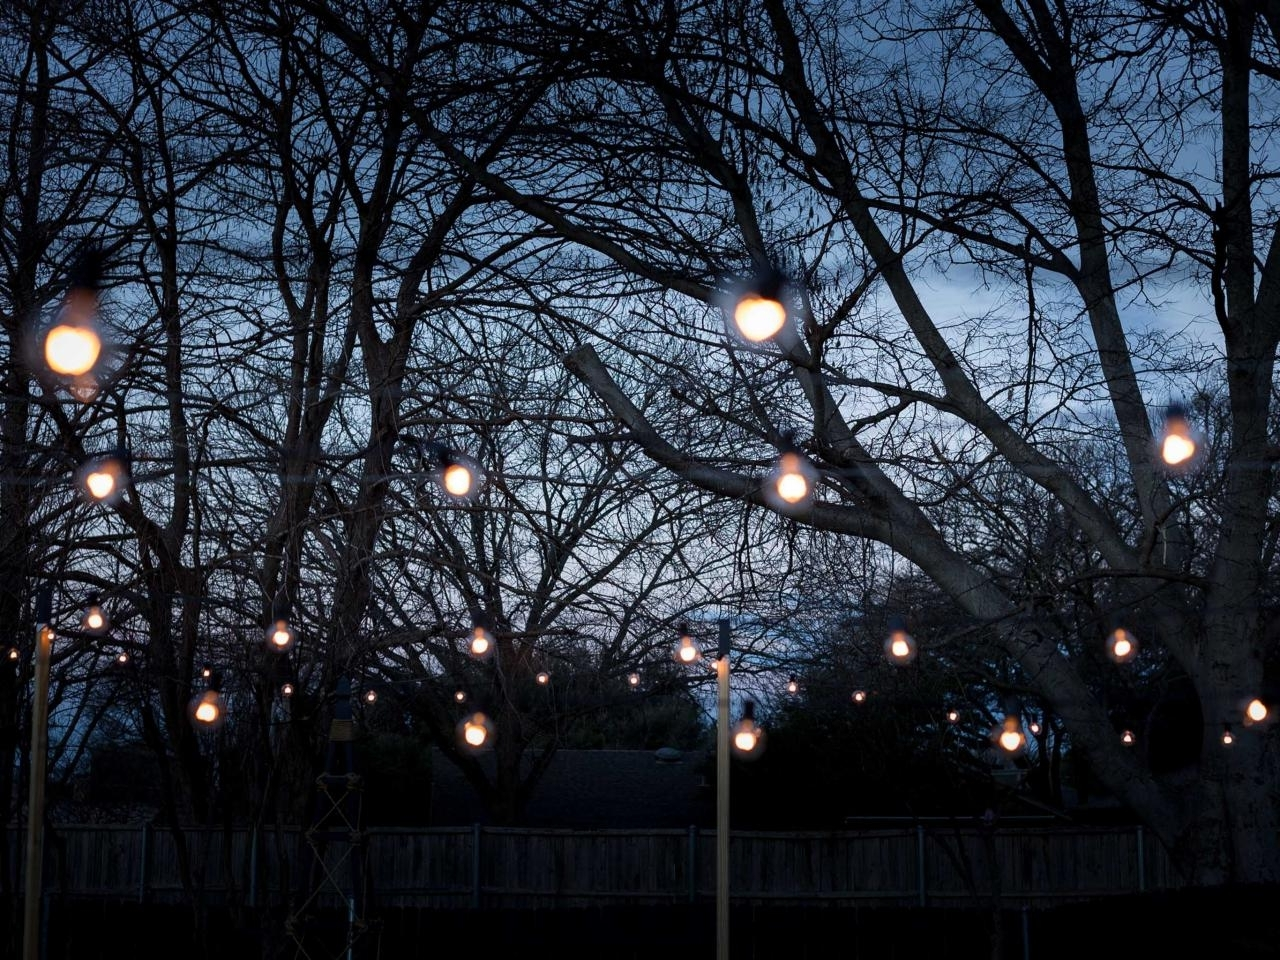 Hgtv With Regard To Well Known Hanging Outdoor Lights On Trees (View 14 of 20)